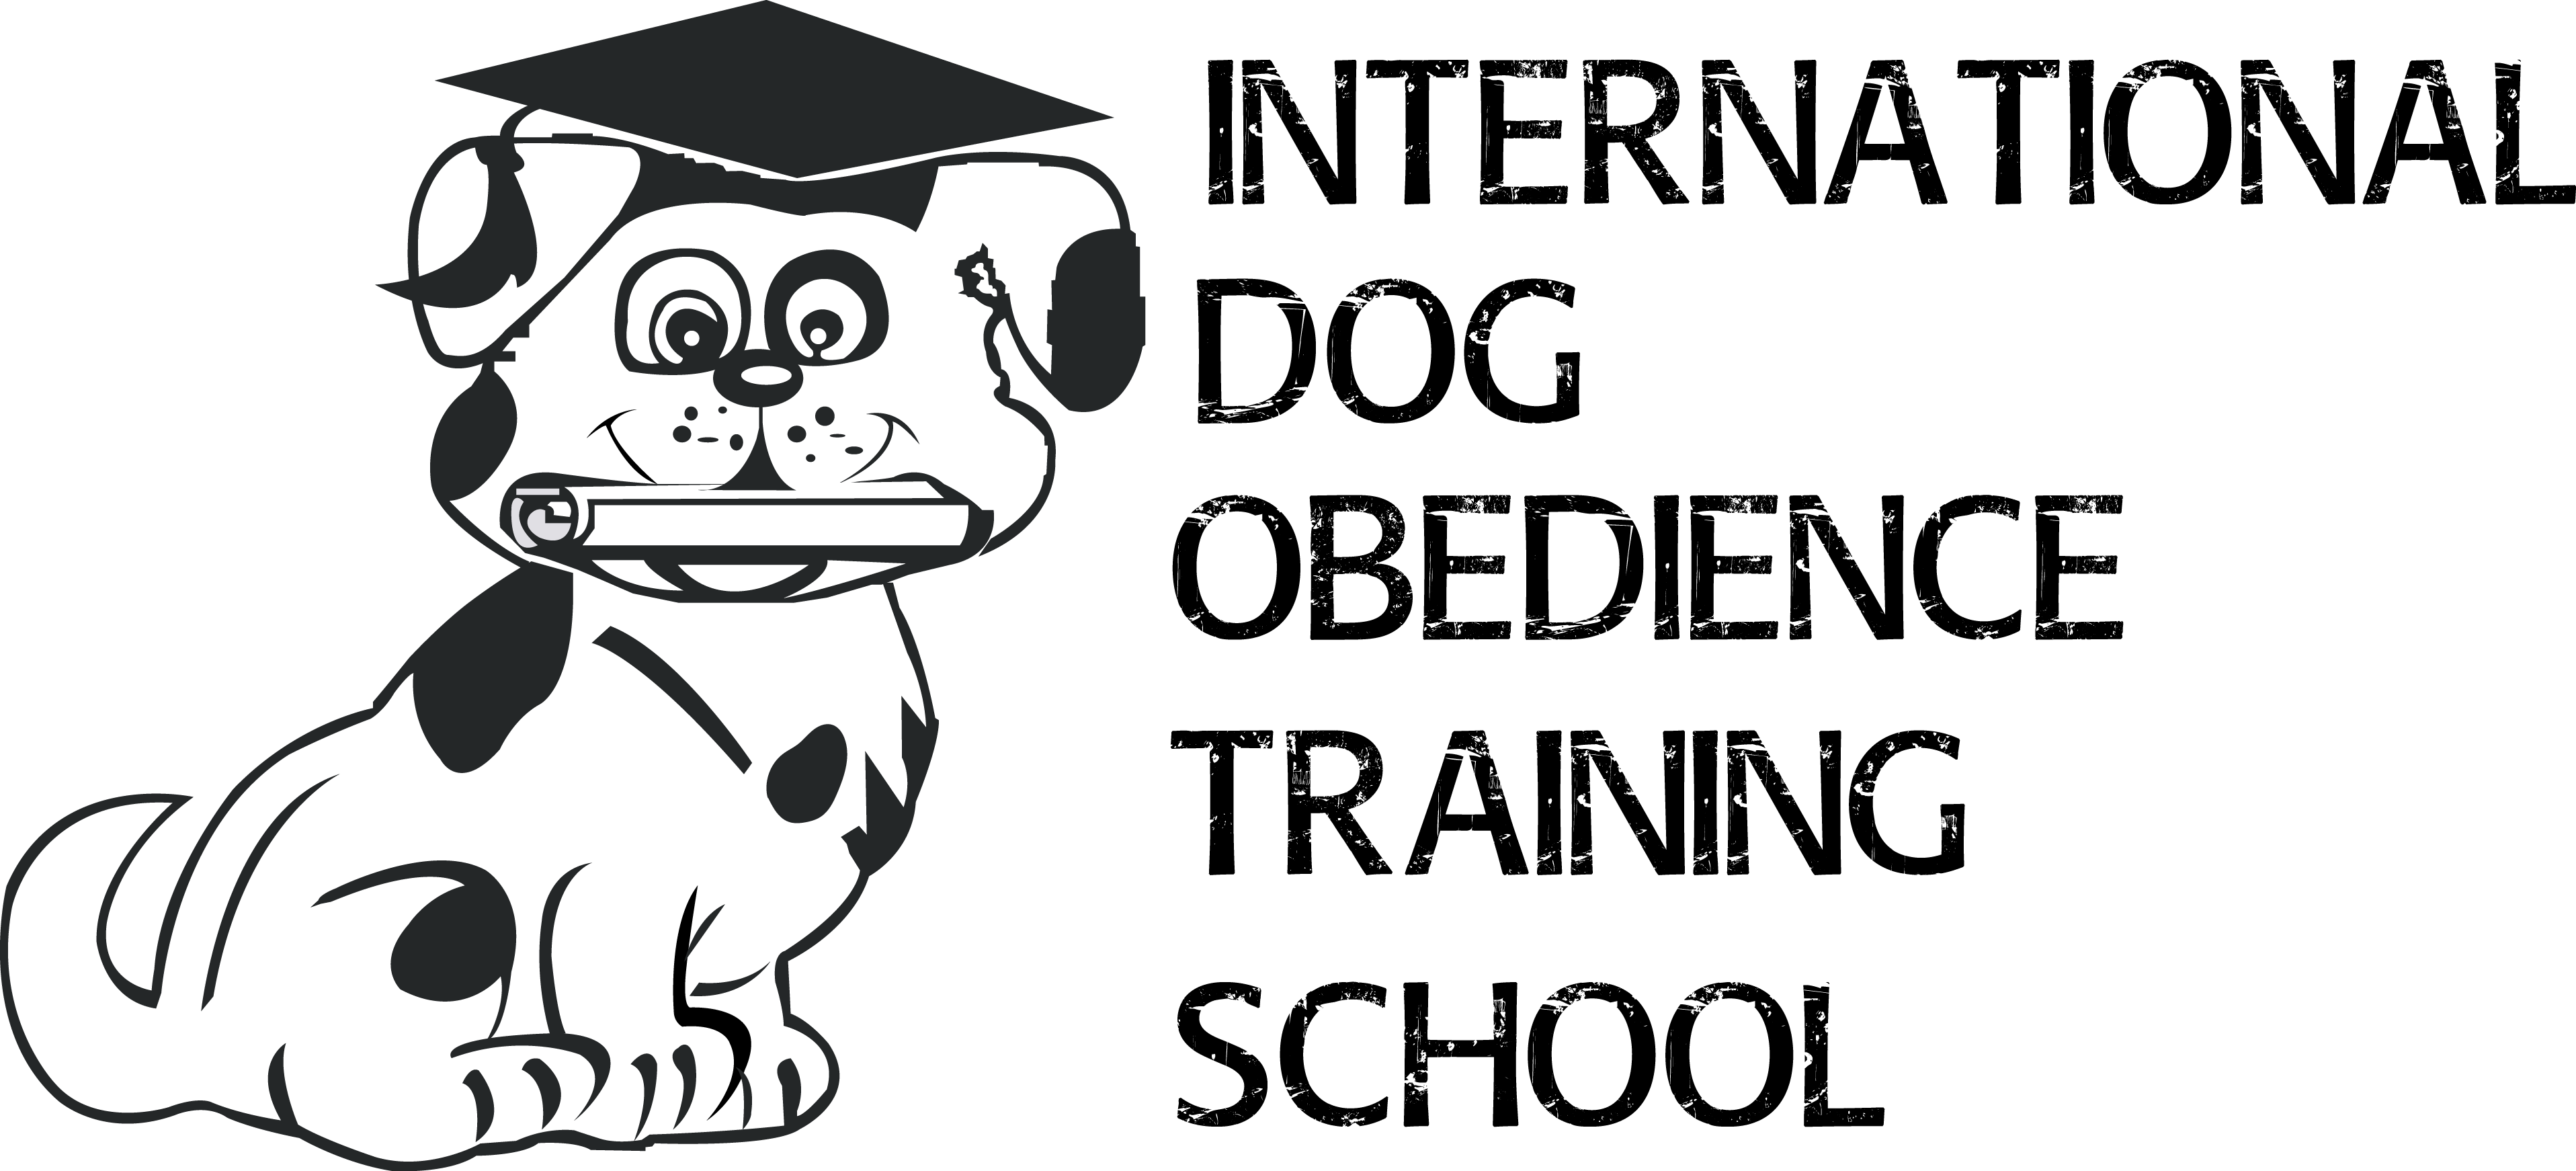 https://www.internationaldogtrainingschool.com